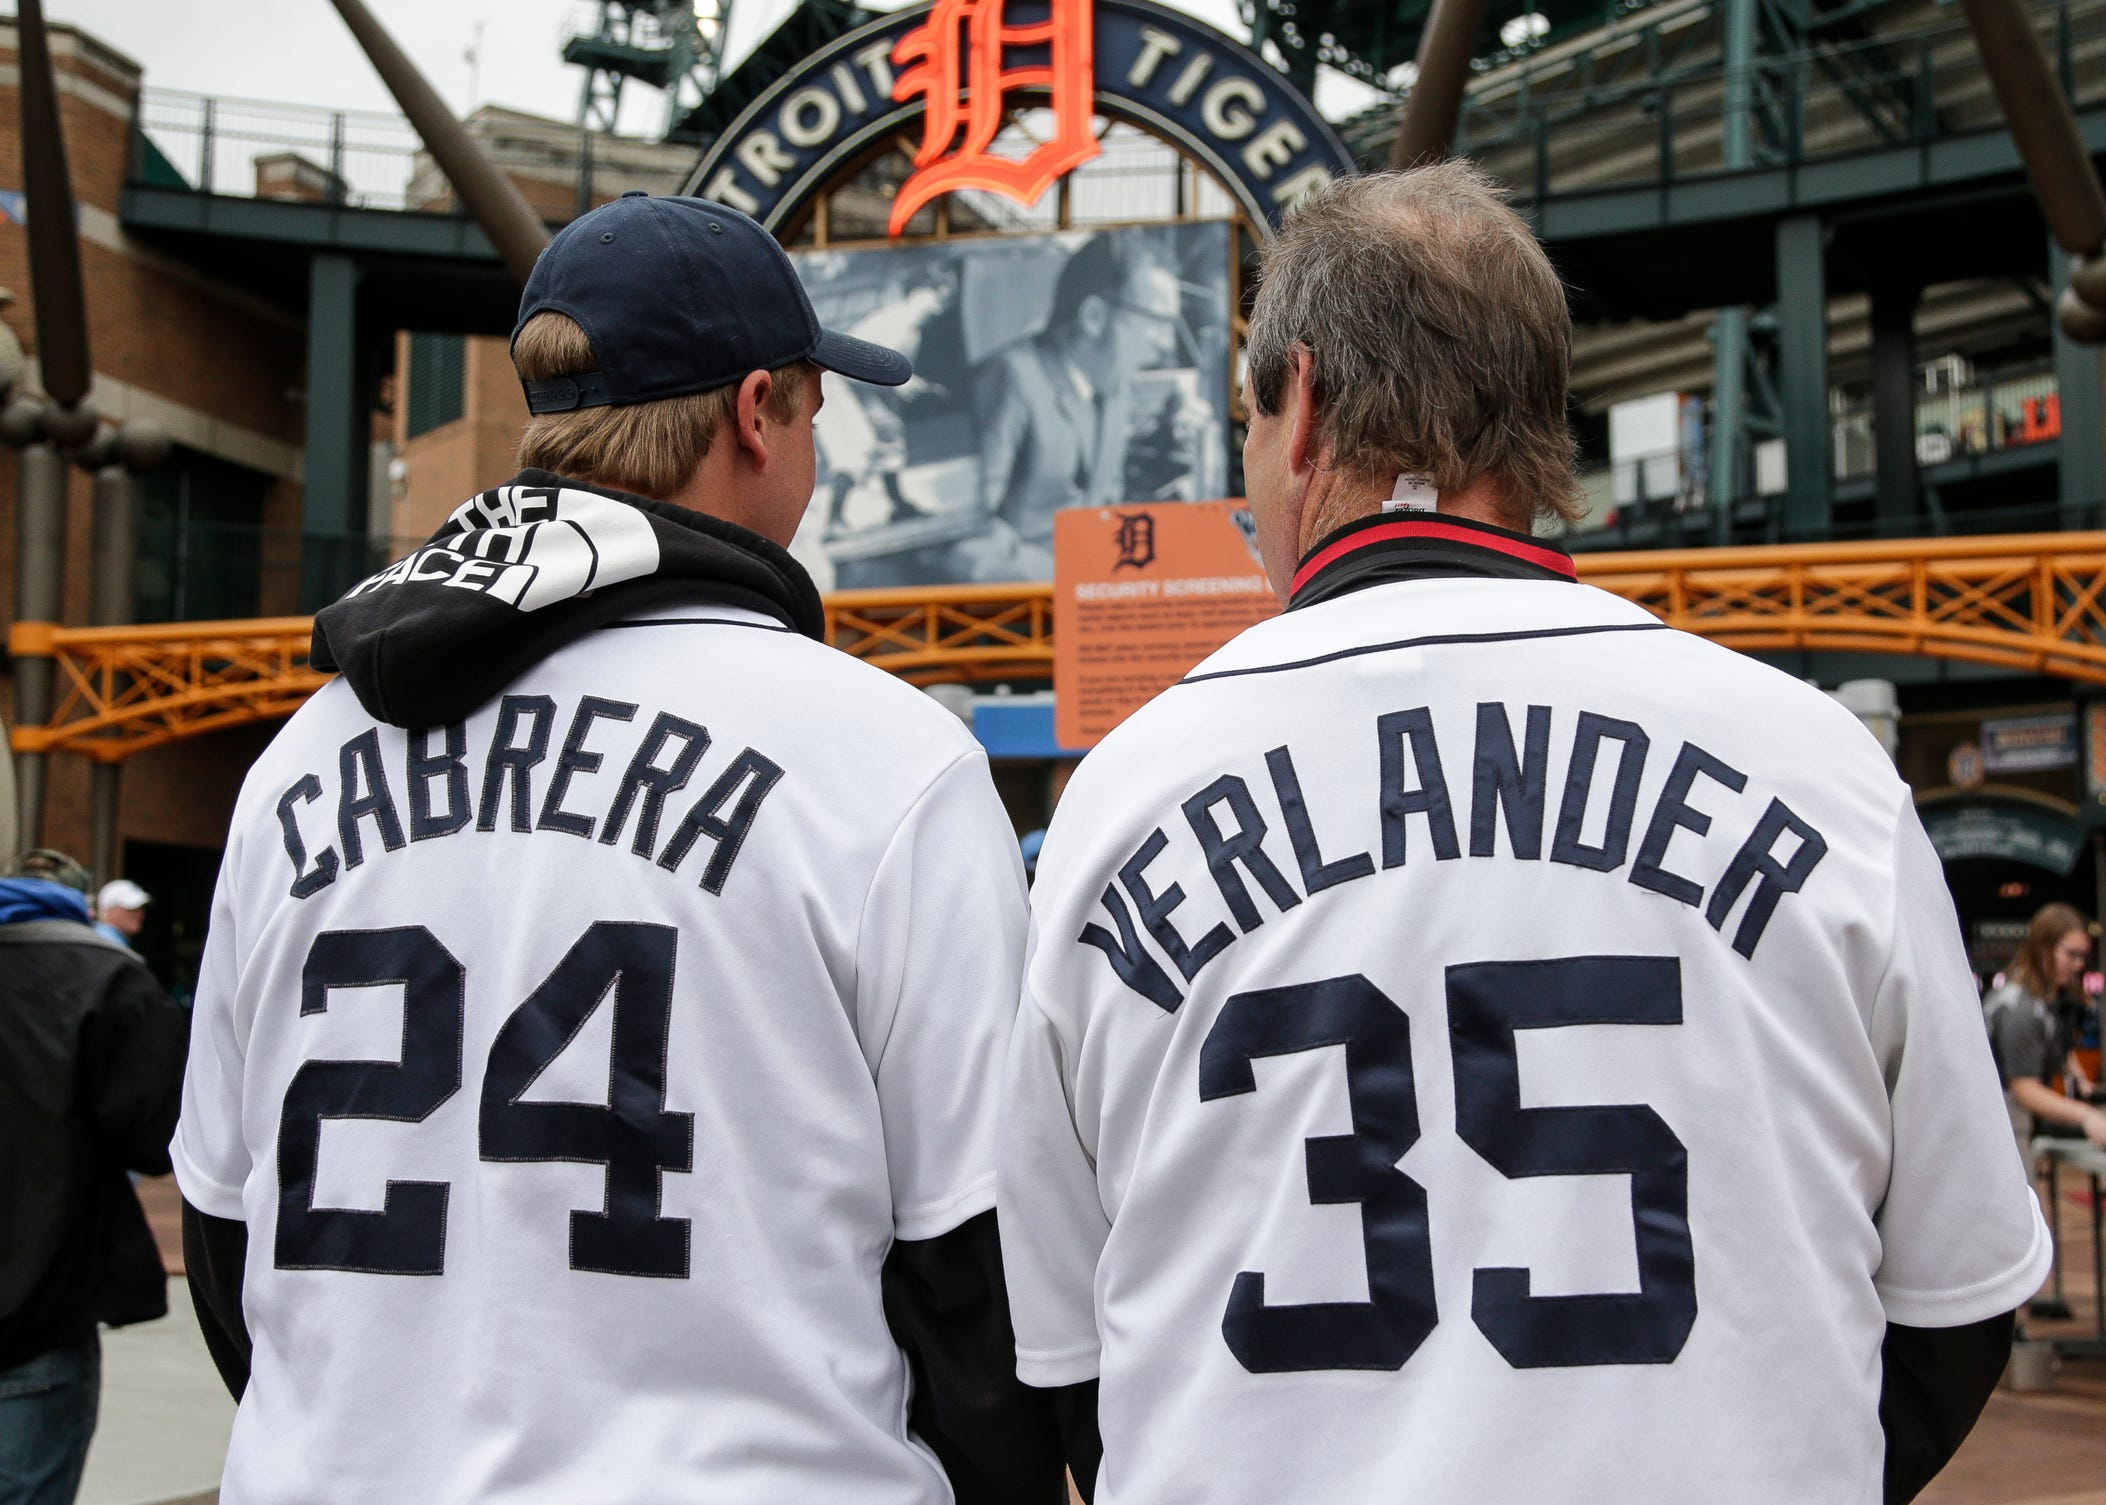 Brandon Meadows, 17, of Livonia, left, talks to his father Tom Meadows, also of Livonia, wears a Justin Verlander jersey, as they enter Comerica Park before the Detroit Tigers-Houston Astros game on Monday, Sept. 10, 2018.